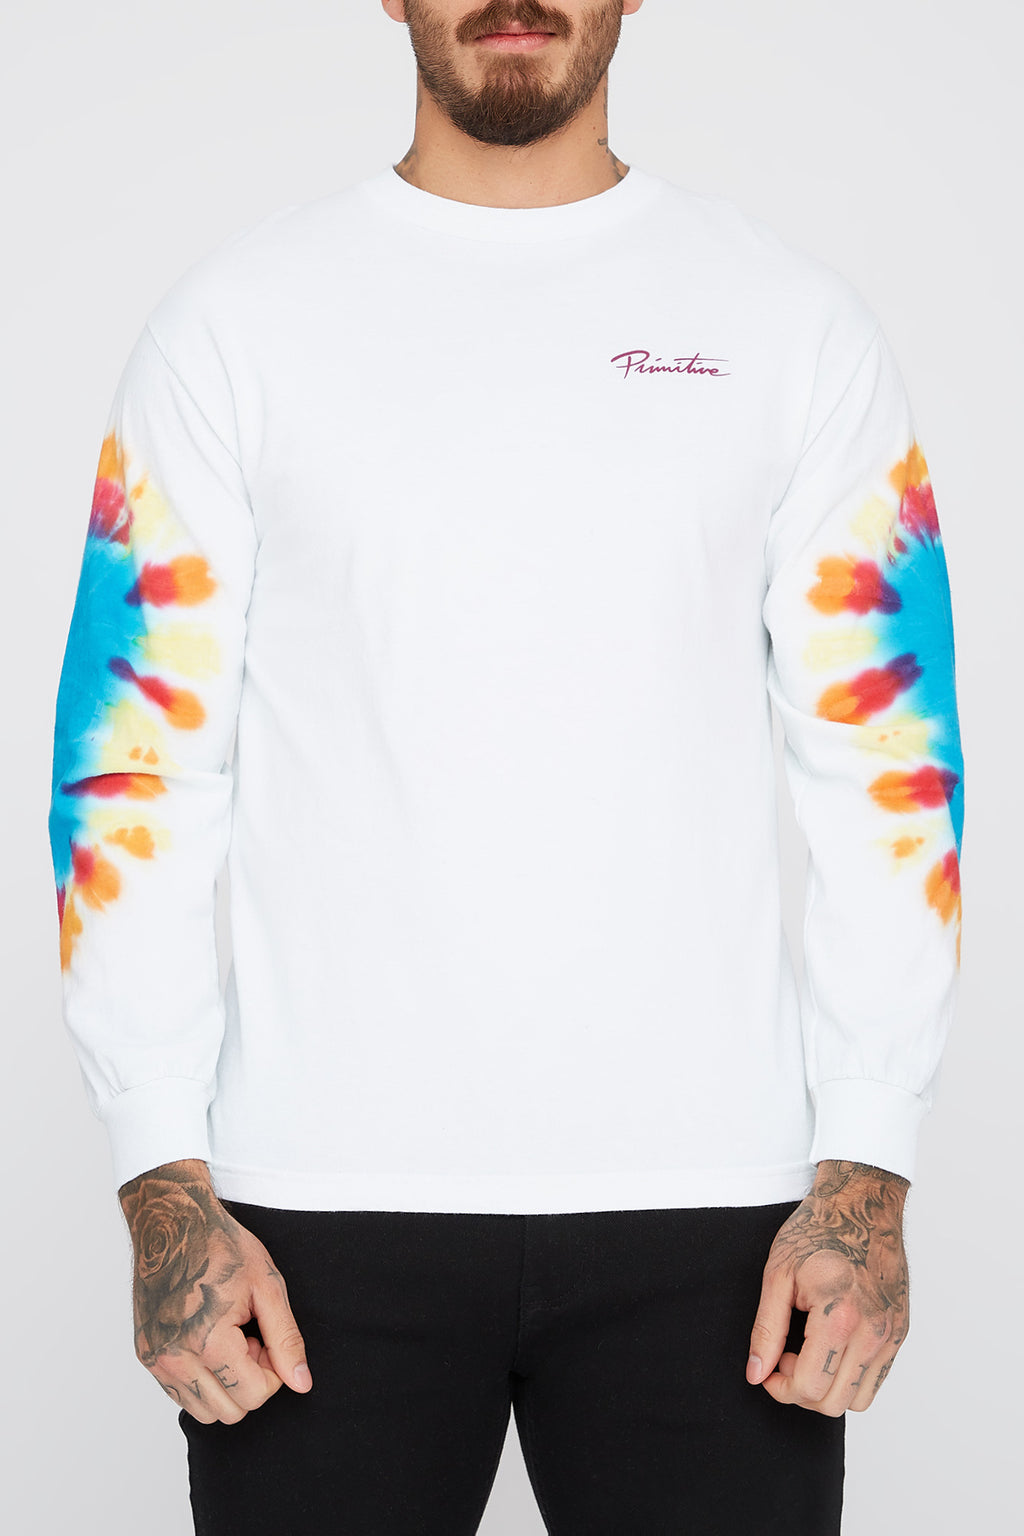 Primitive Mens Tie-Dye Long Sleeve T-Shirt